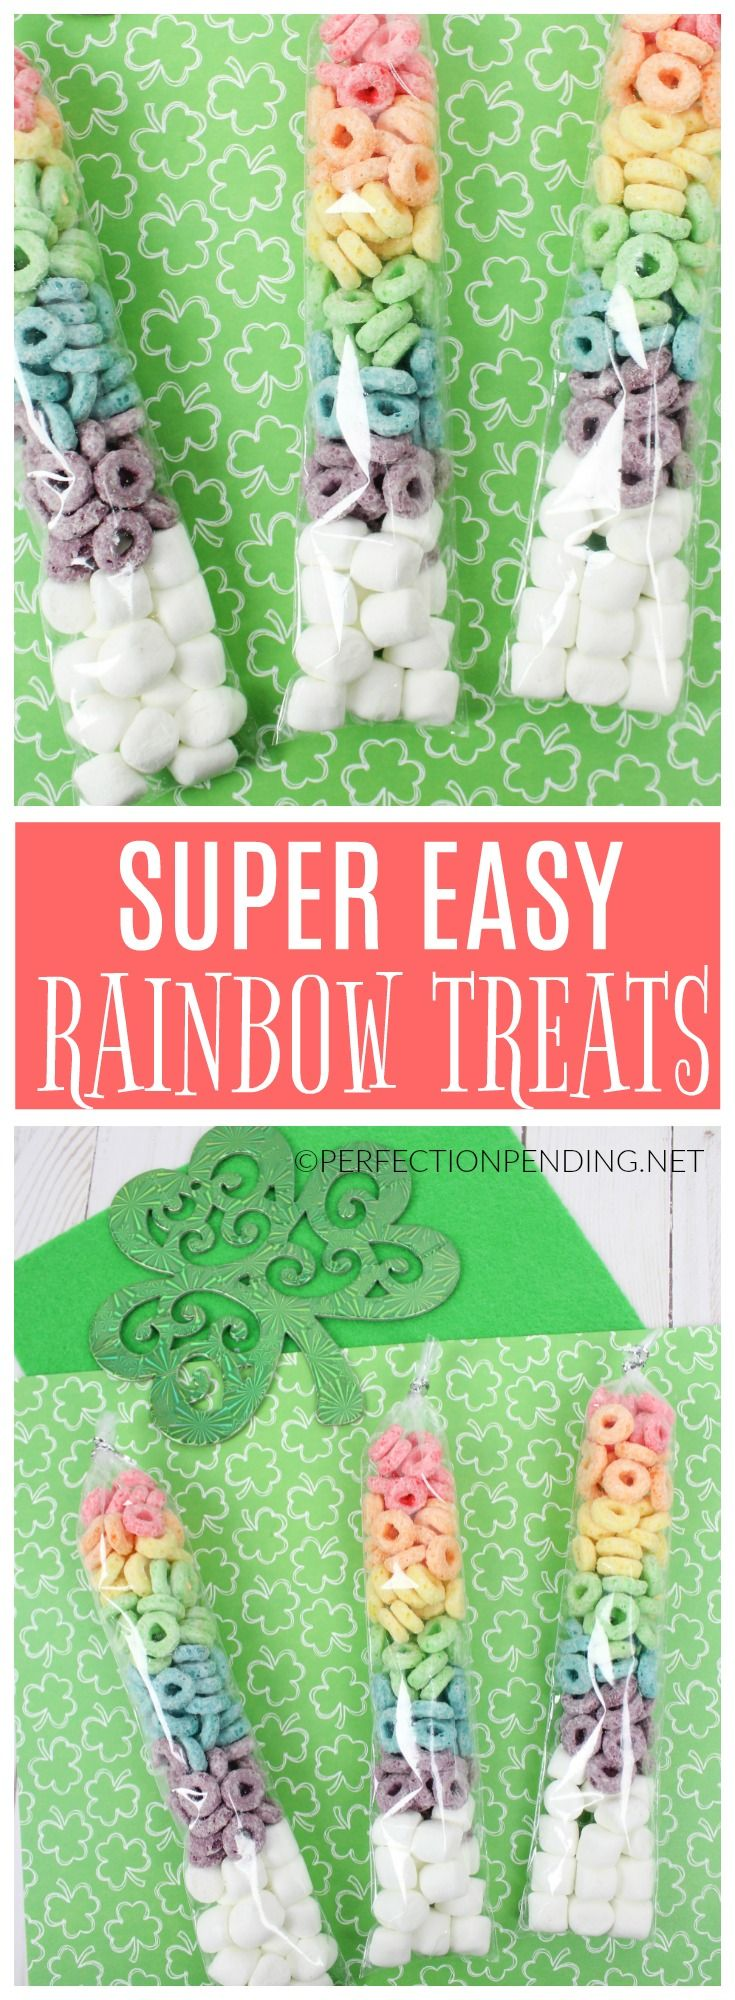 Rainbow foods are a fun way to celebrate St. Patrick's day with your kids. Whether the naughty leprechaun comes to your house, or if you just like making a fun rainbow gift idea for neighbors or friends, these DIY easy rainbow treats made with fruit loops and marshmallows are the perfect easy idea for a fun snack, activity or gift for kids. Preschoolers will love helping you put these rainbow treats together, or it can be a fun rainy day activity, or rainbow party favor too. #stpatricksday…